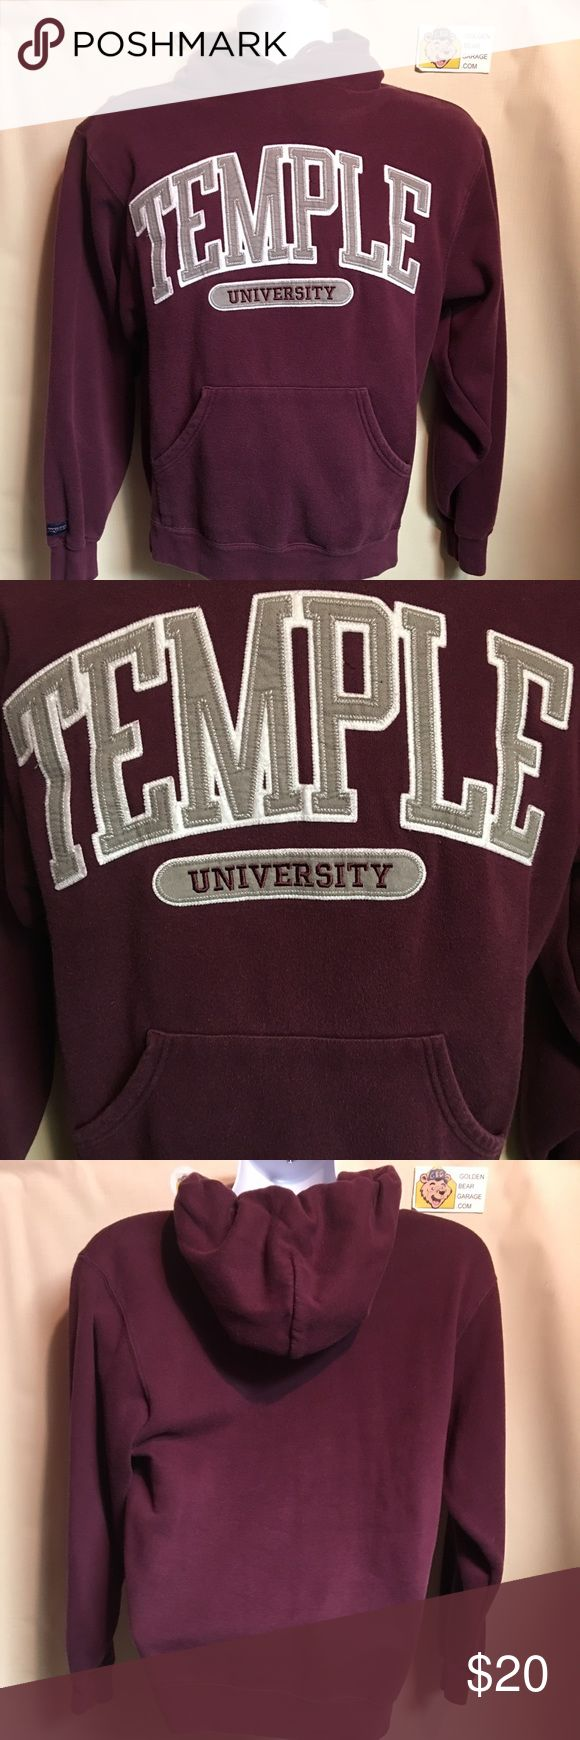 Temple University Hoodie Gently Worn Temple University Hoodie. In excellent condition with no major flaws. Champion Shirts Sweatshirts & Hoodies